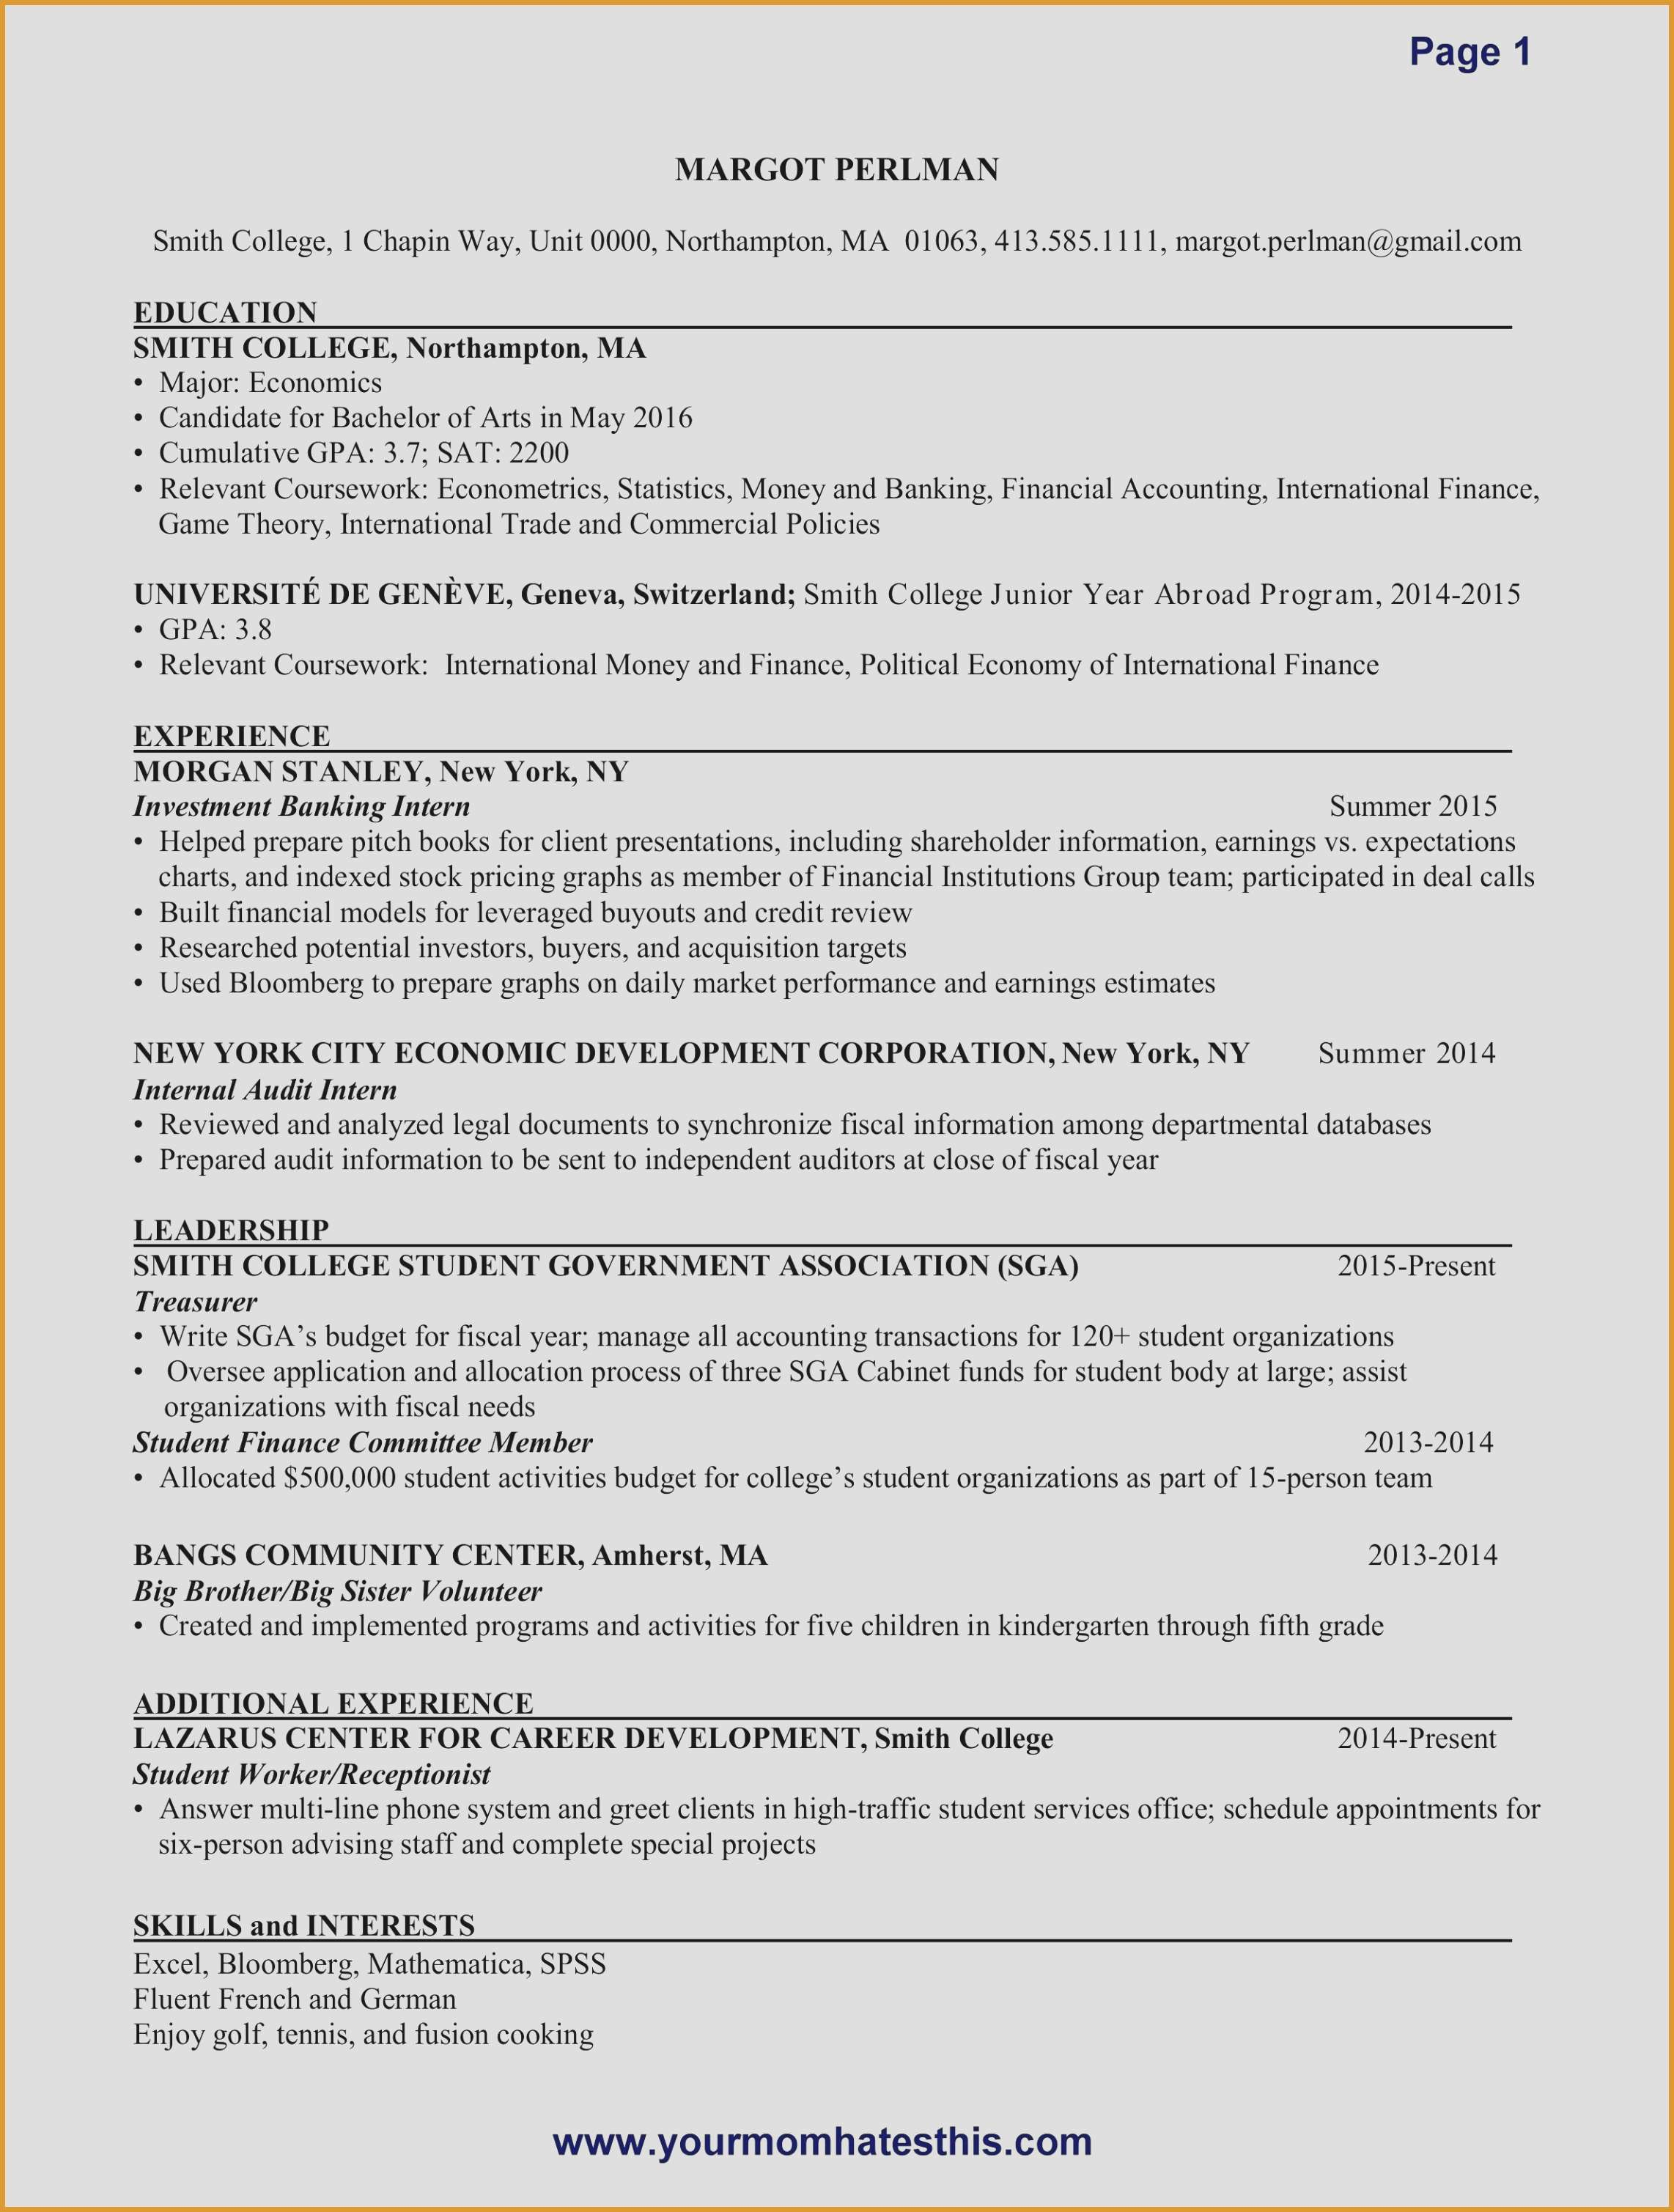 Letter to Investors Template - Help with A Resume Lovely Pr Resume Template Elegant Dictionary